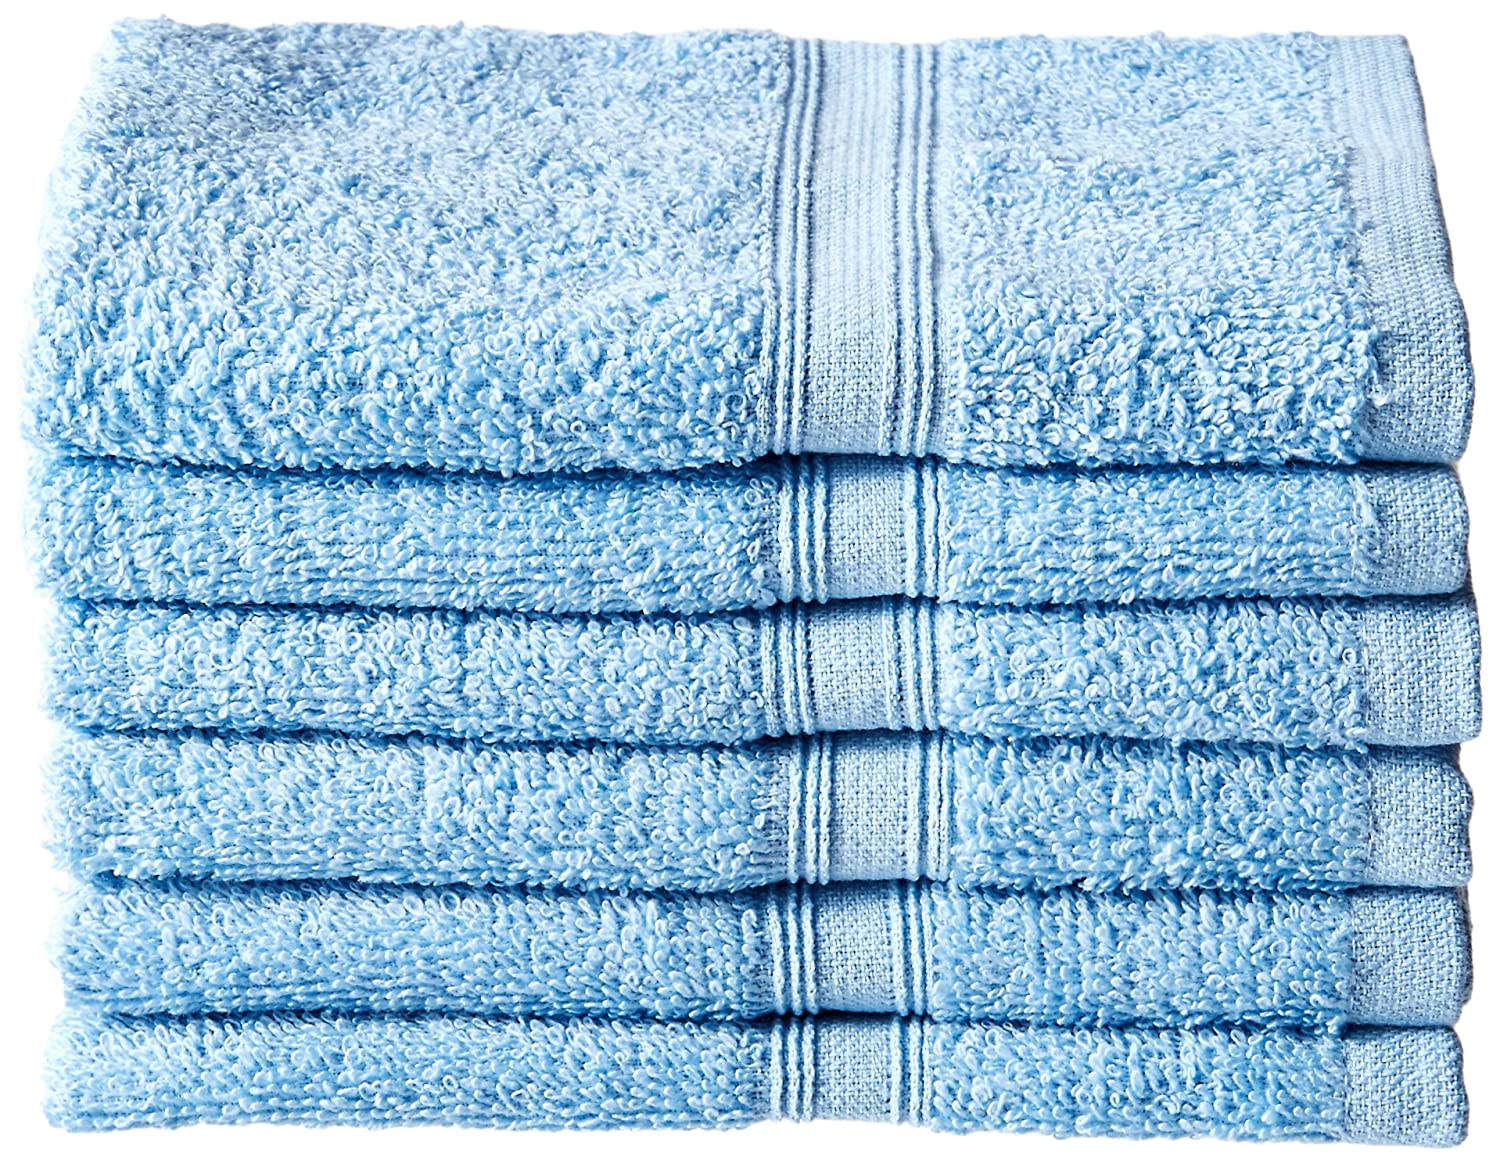 Northpoint Solid 6 Pack Cotton Terry Washcloth 13 x 13 Daffodil Northpoint Trading Inc 156026